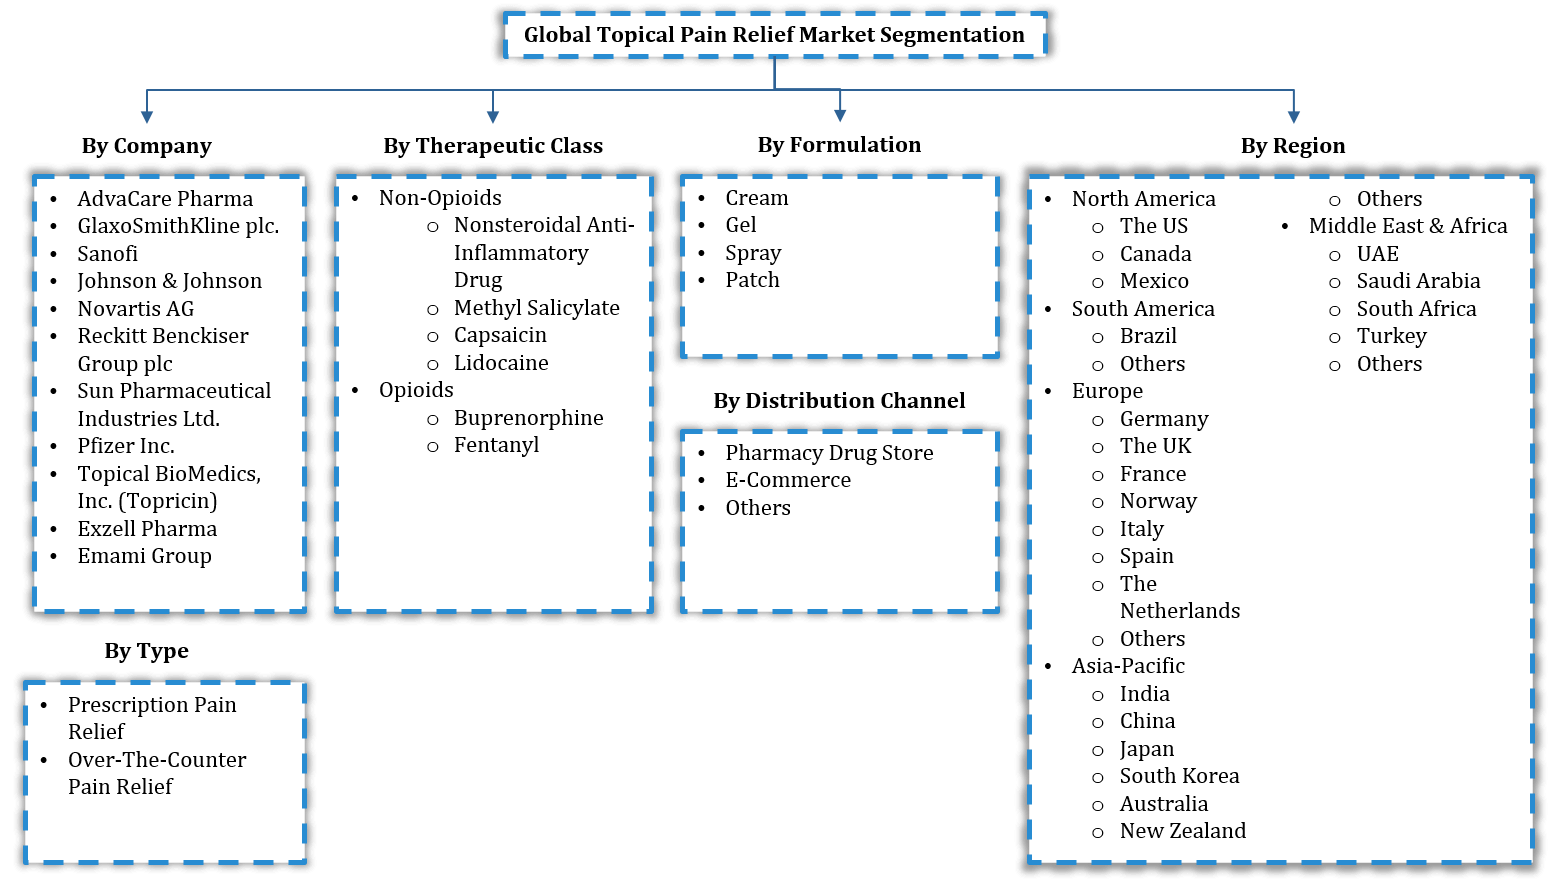 Global Topical Pain Relief Market Segmentation